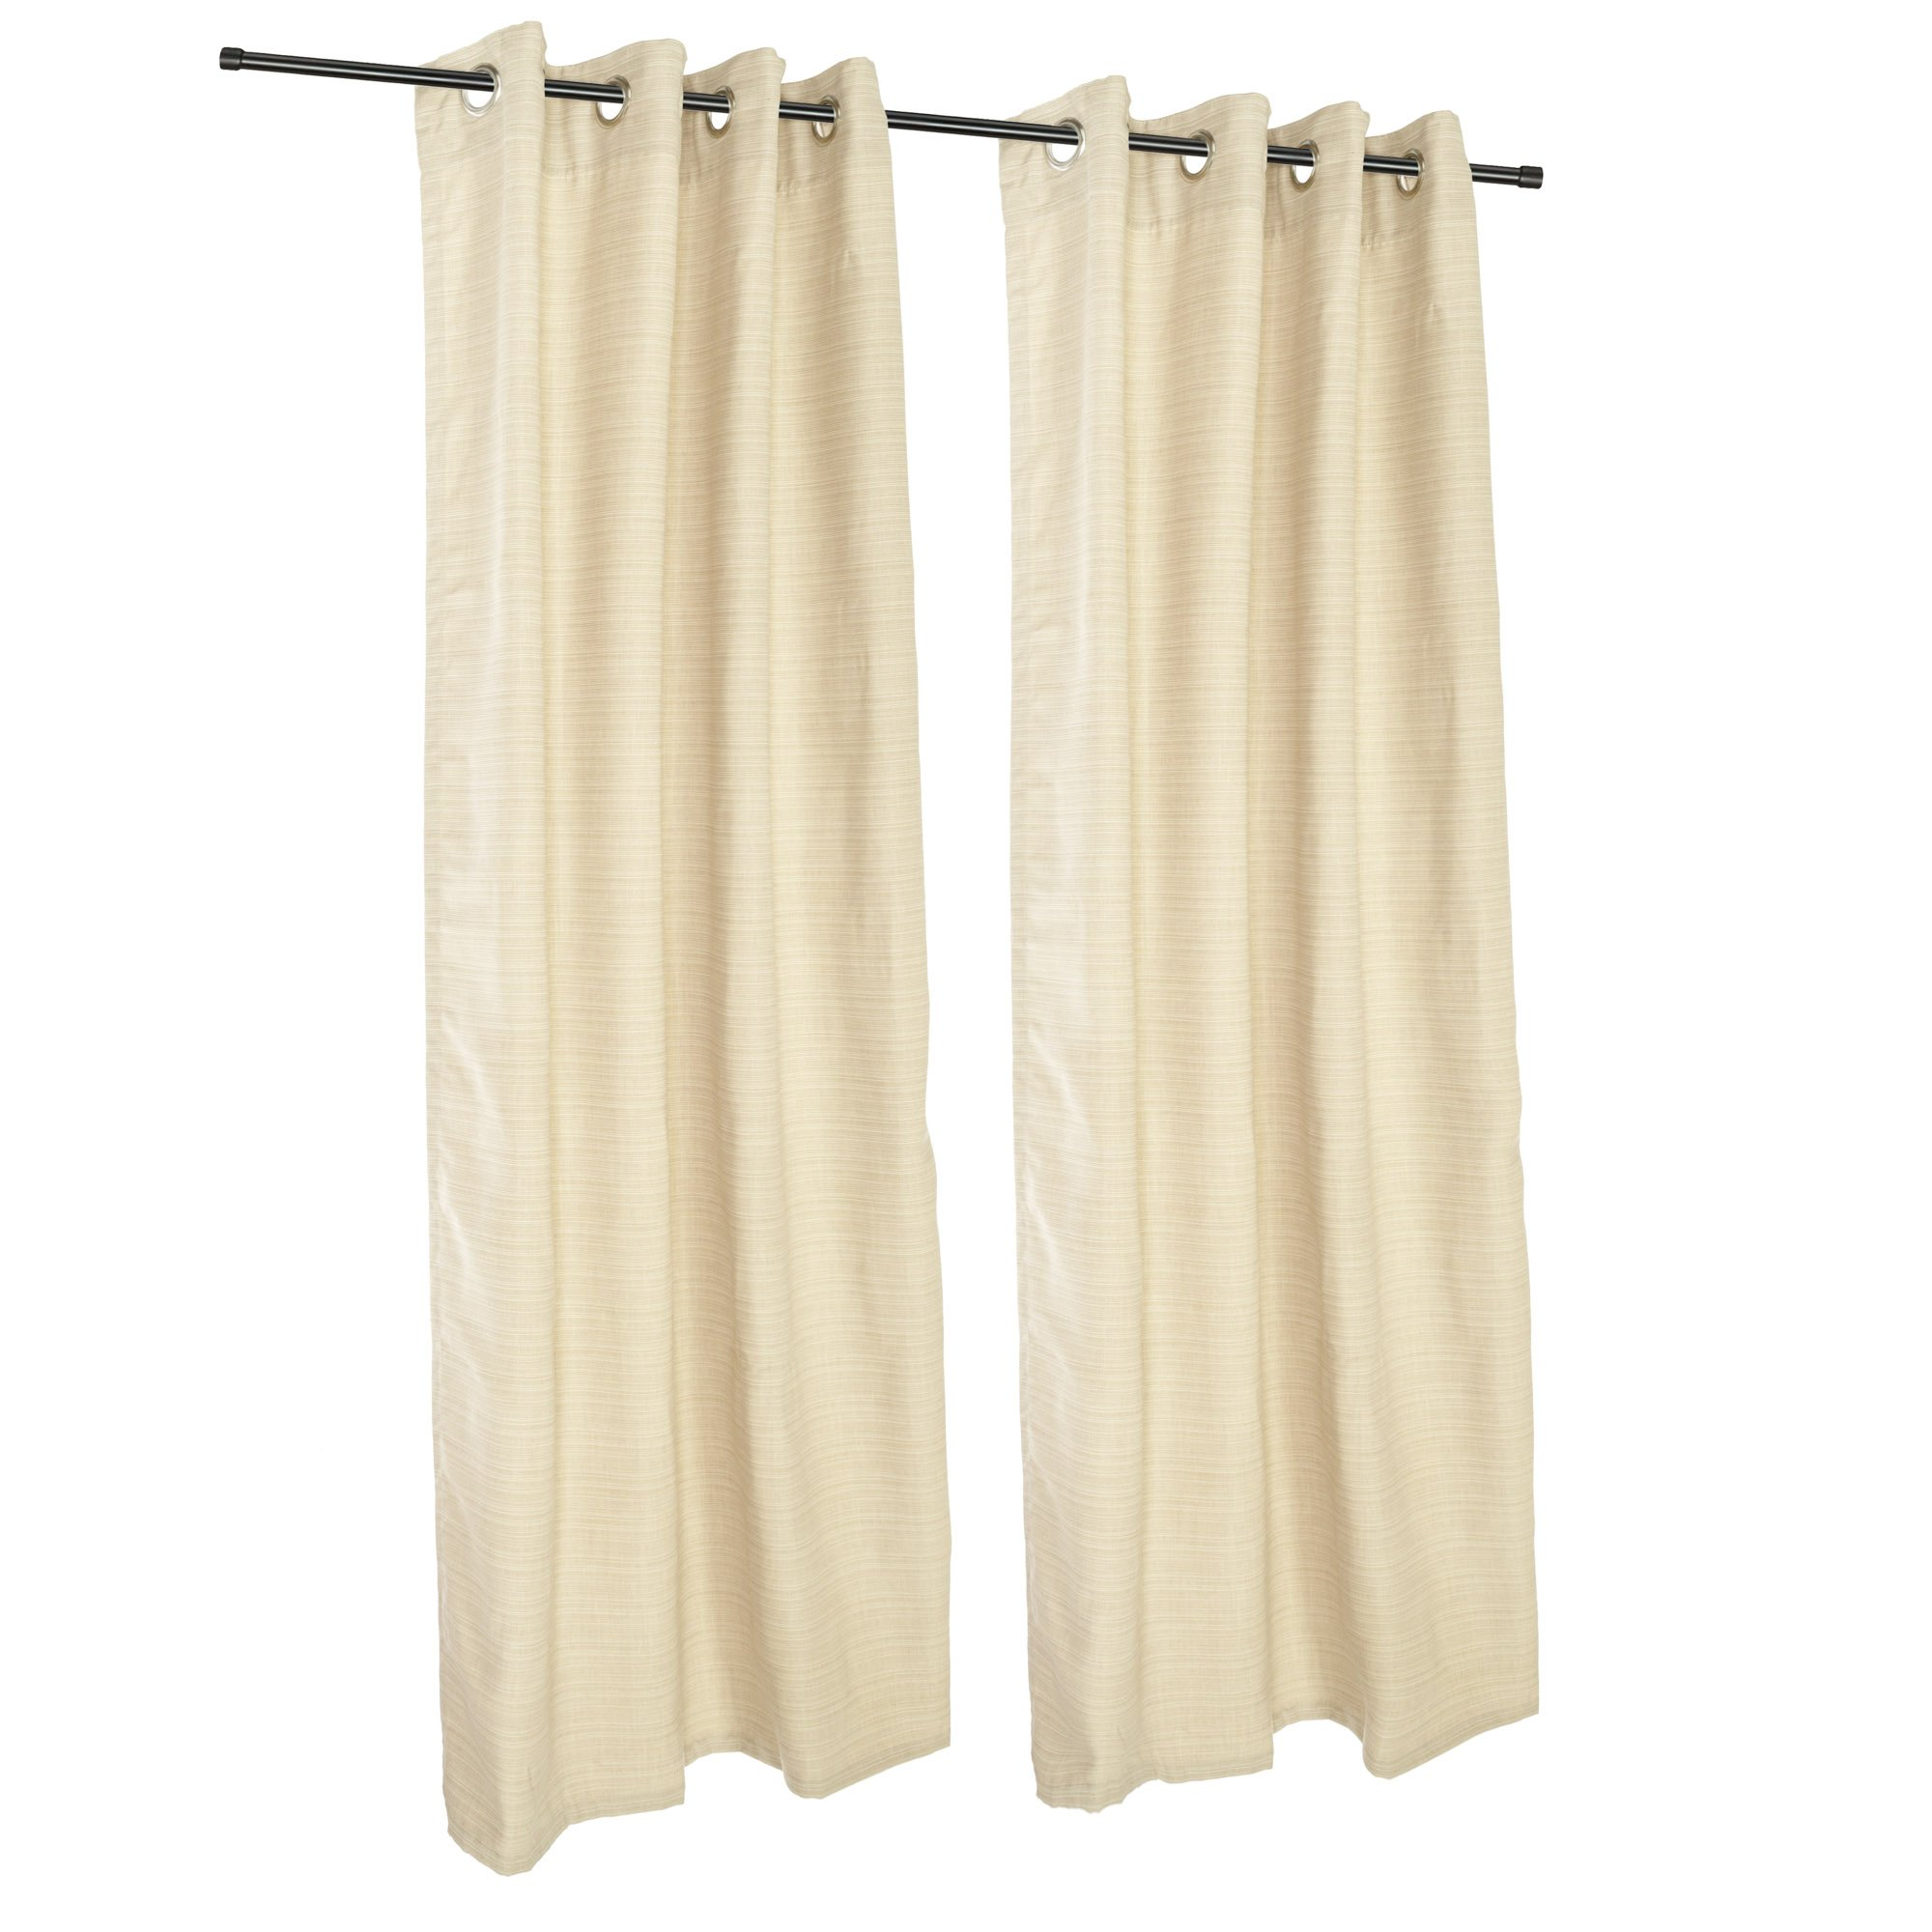 Sunbrella Outdoor Curtain with Grommets -Nickle Grommets-Dupione Pearl by Sunbrella